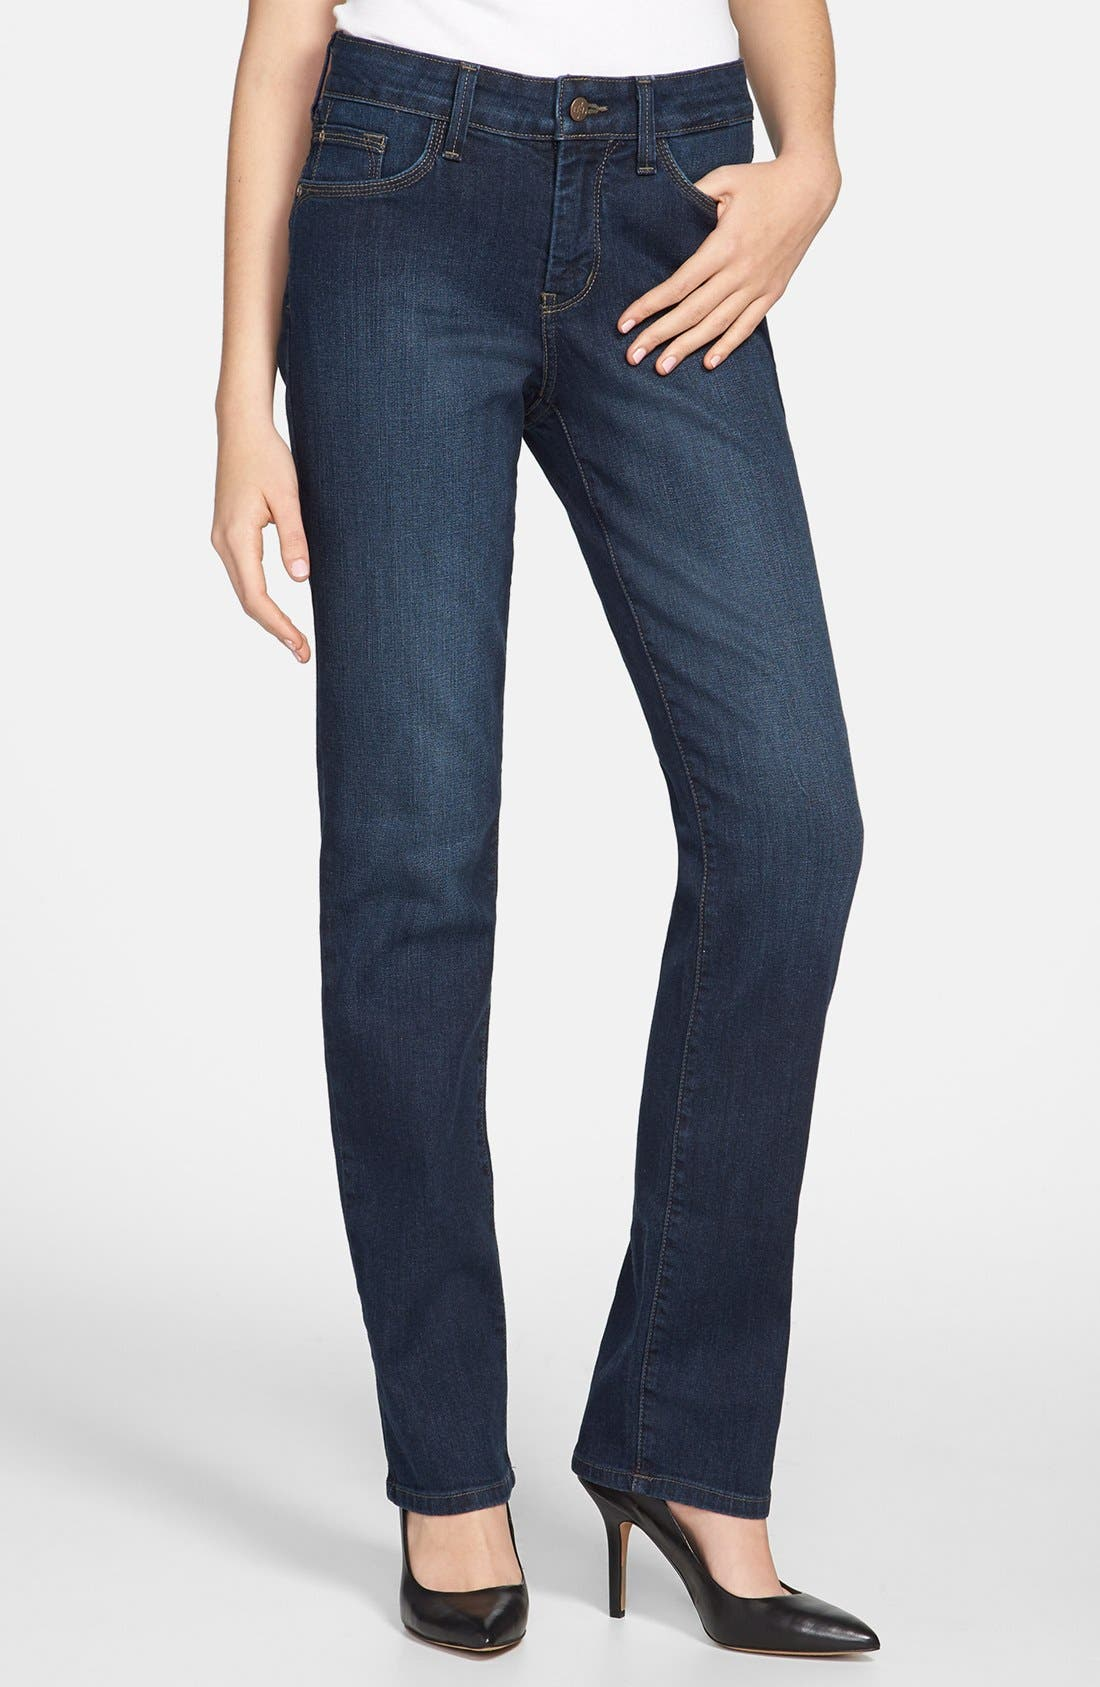 Main Image - NYDJ 'Marilyn' Stretch Straight Leg Jeans (Tustin) (Regular & Petite)